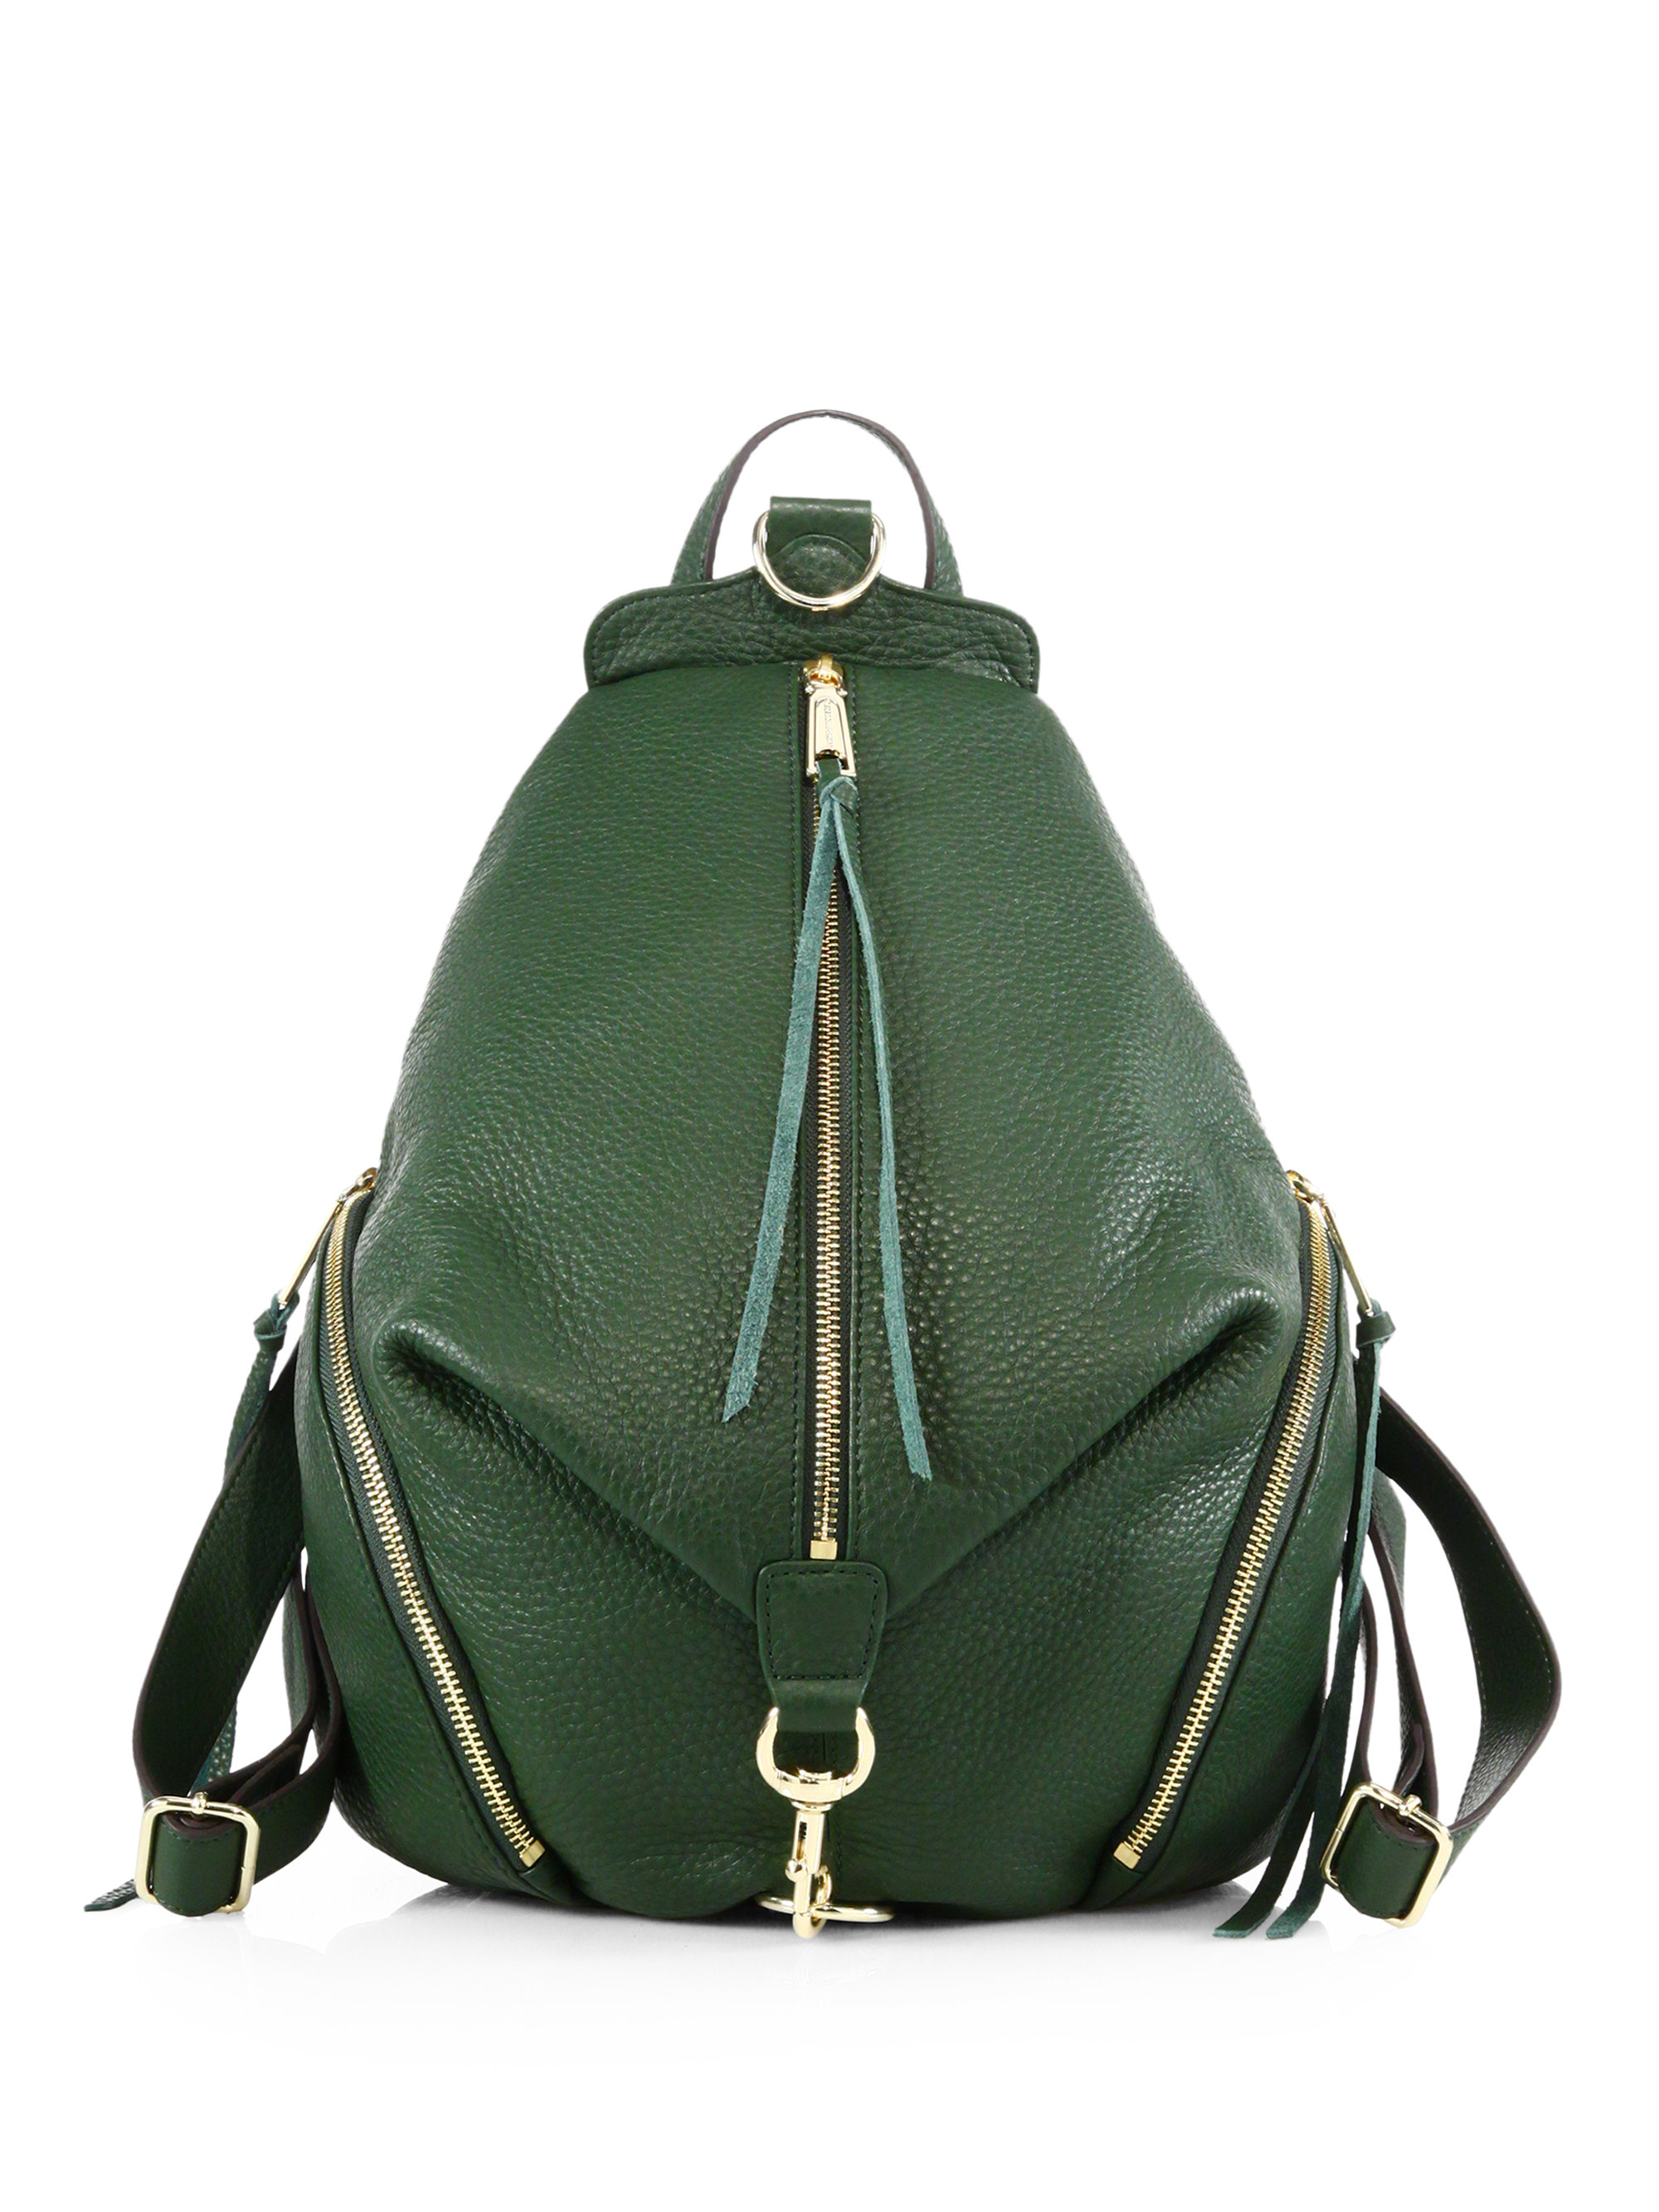 Green Leather Backpack CxI9svJV